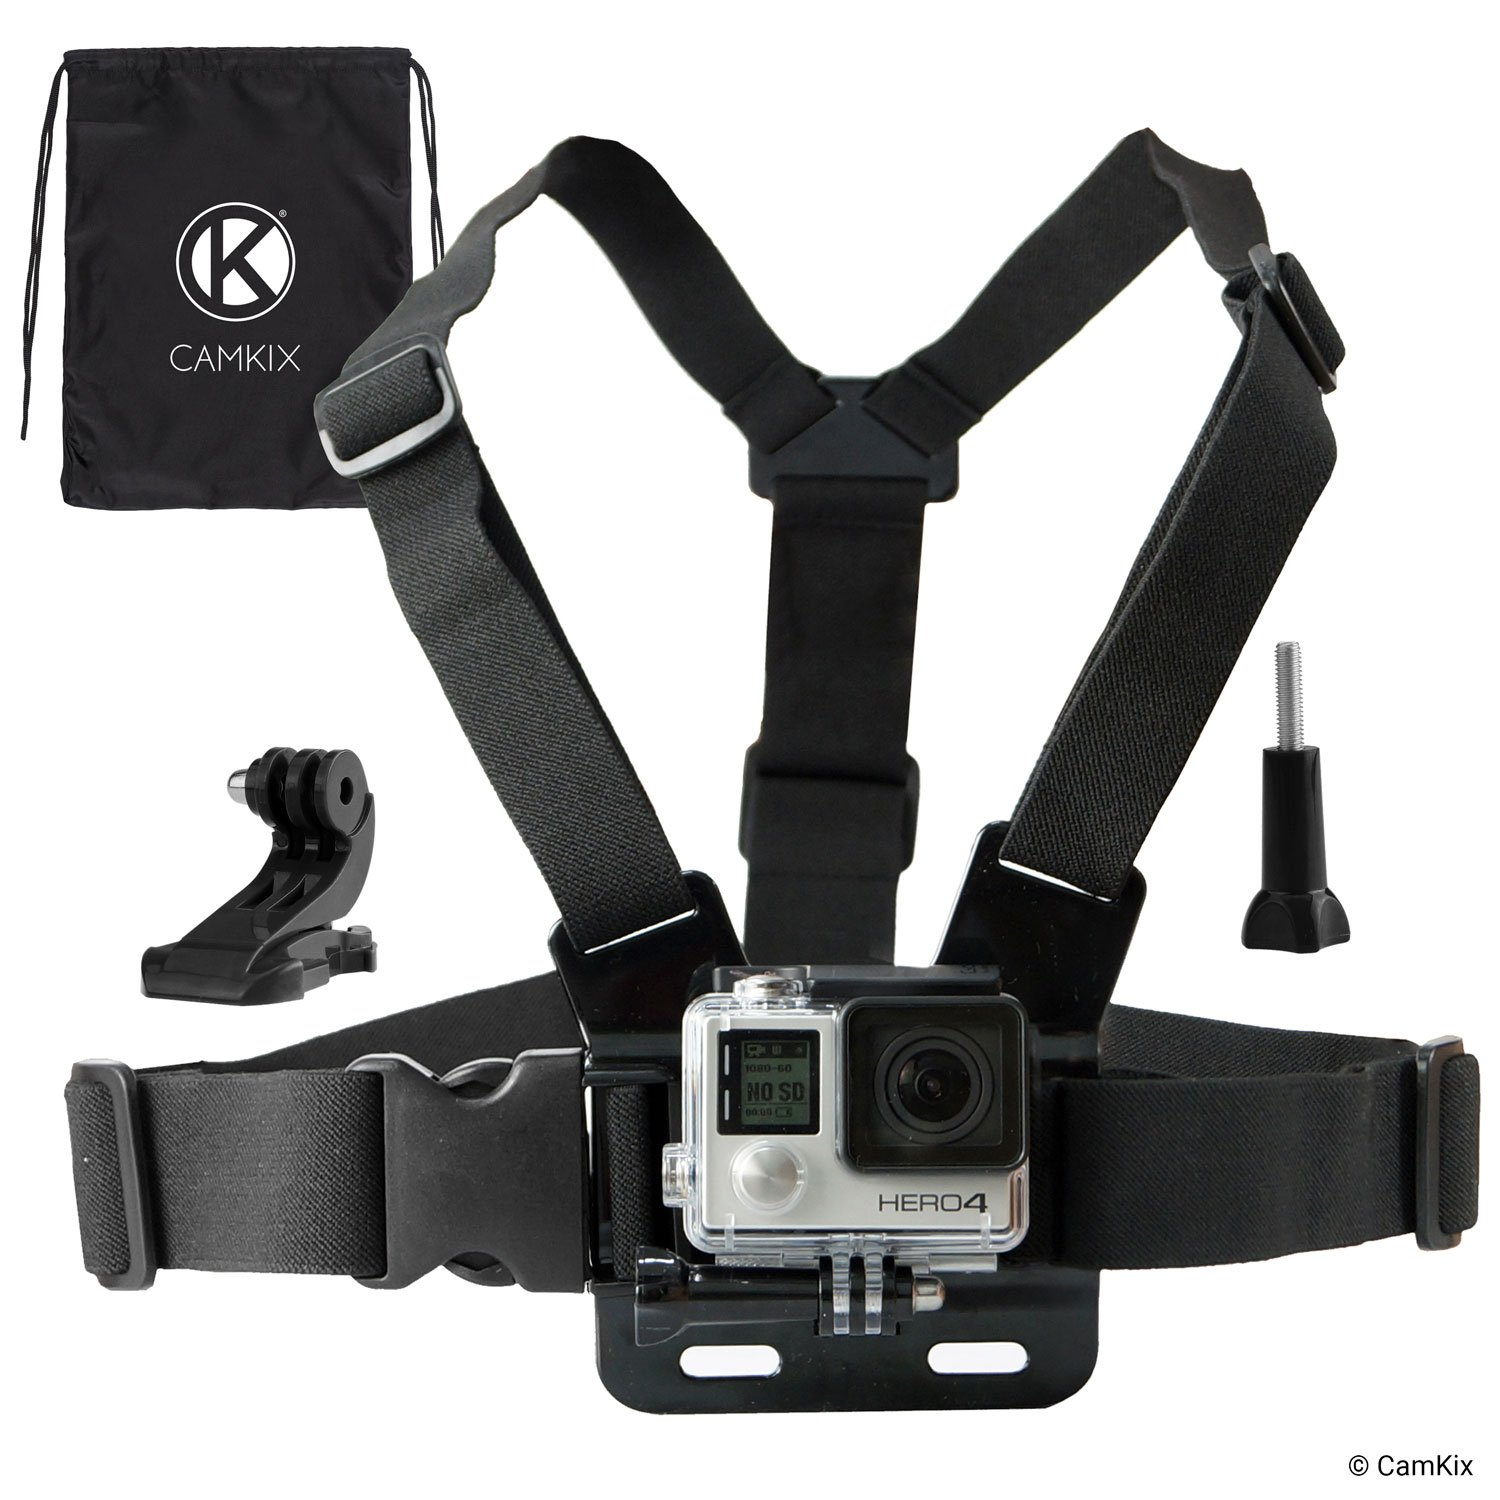 CamKix Chest Mount Harness Compatible with Gopro Hero 8 Black, 7, 6, 5, Black, Session, Hero 4, Session, Black, Silver, Hero+ LCD, 3+, 3, 2, 1, DJI Osmo Action - Fully Adjustable Chest Strap by CAMKIX